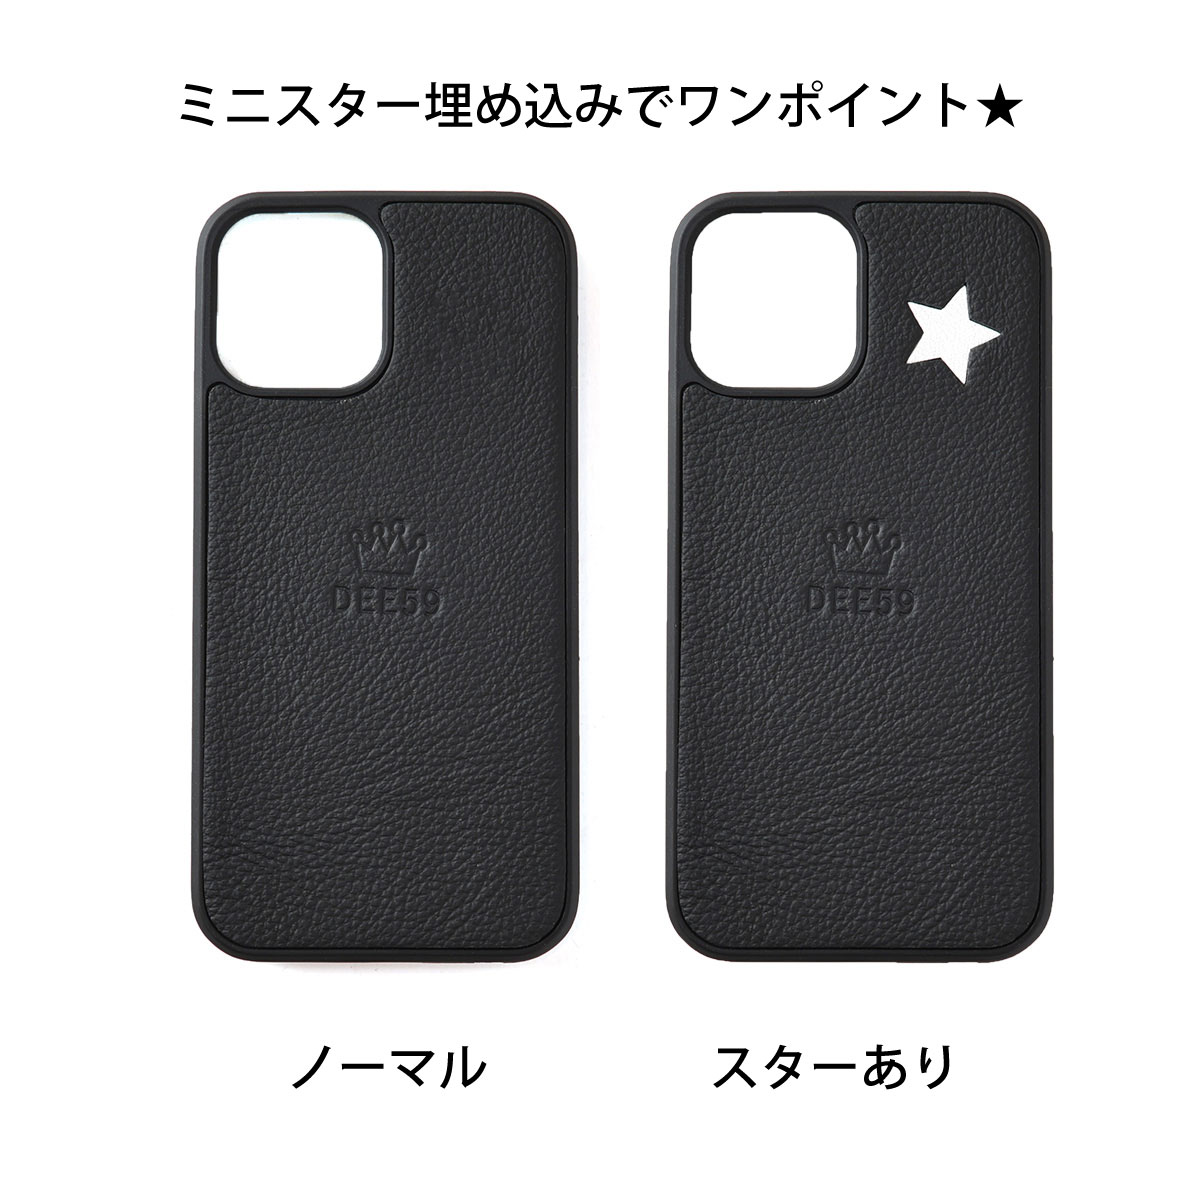 iPhoneOpenCase:   Limited Design:1